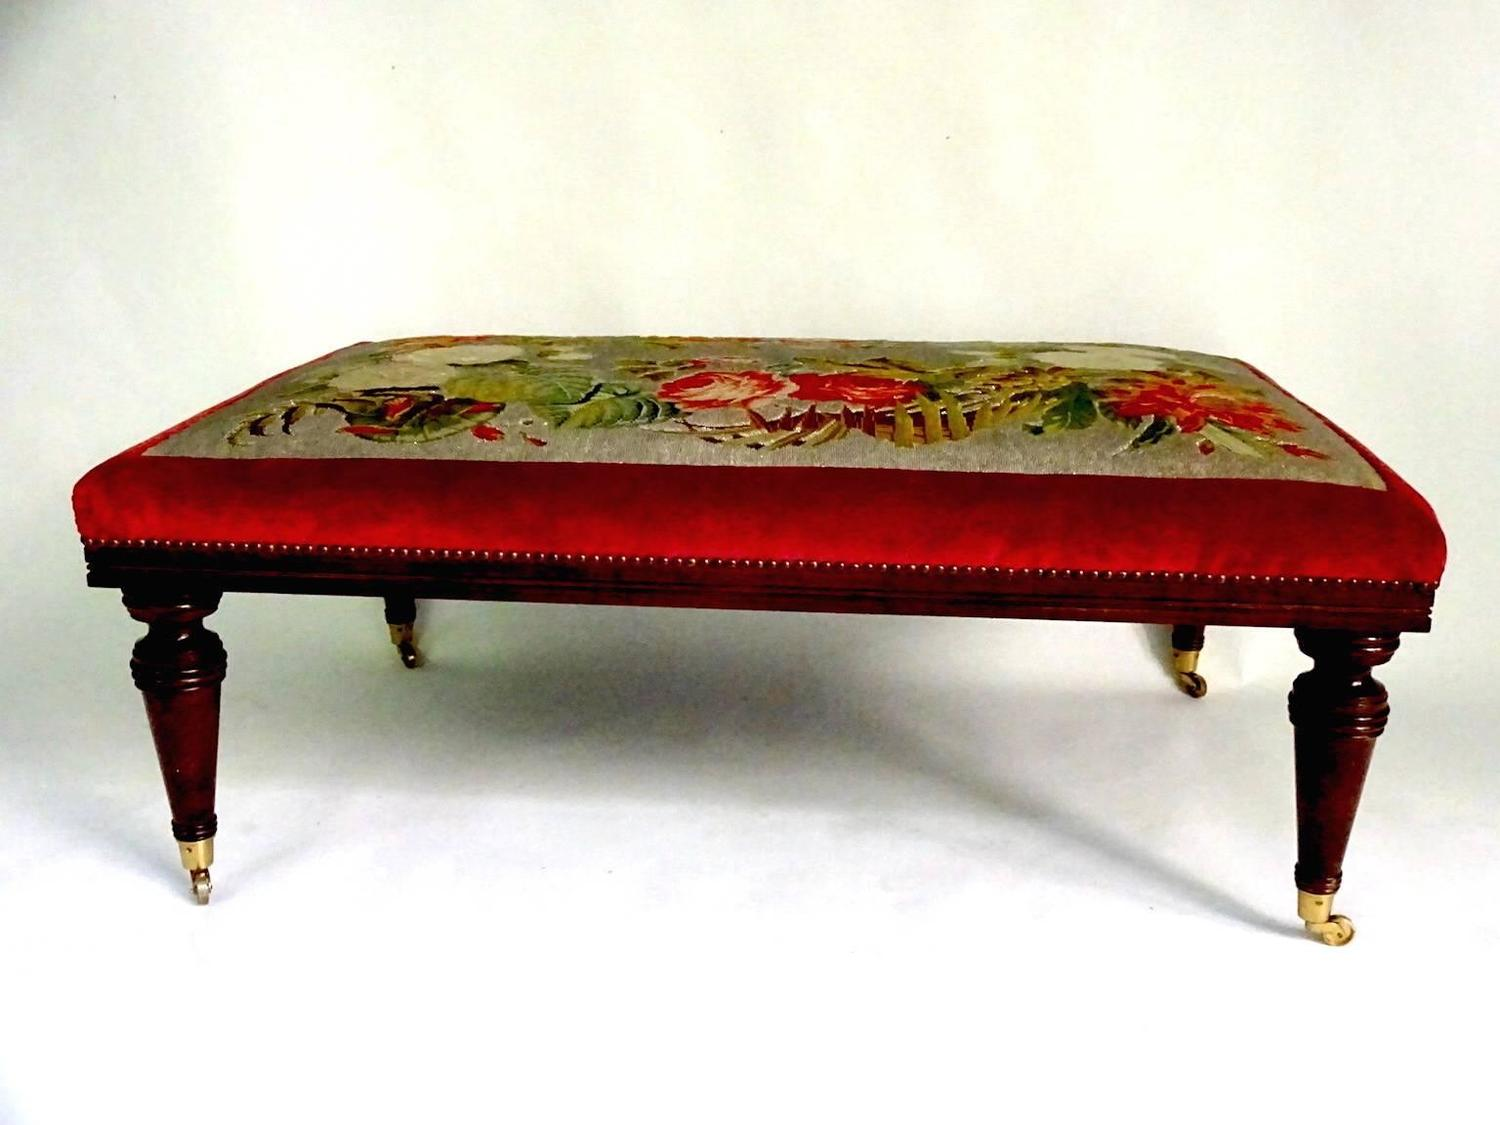 Victorian Mahogany Bench With Beadwork Needlepoint Seat For Sale At 1stdibs